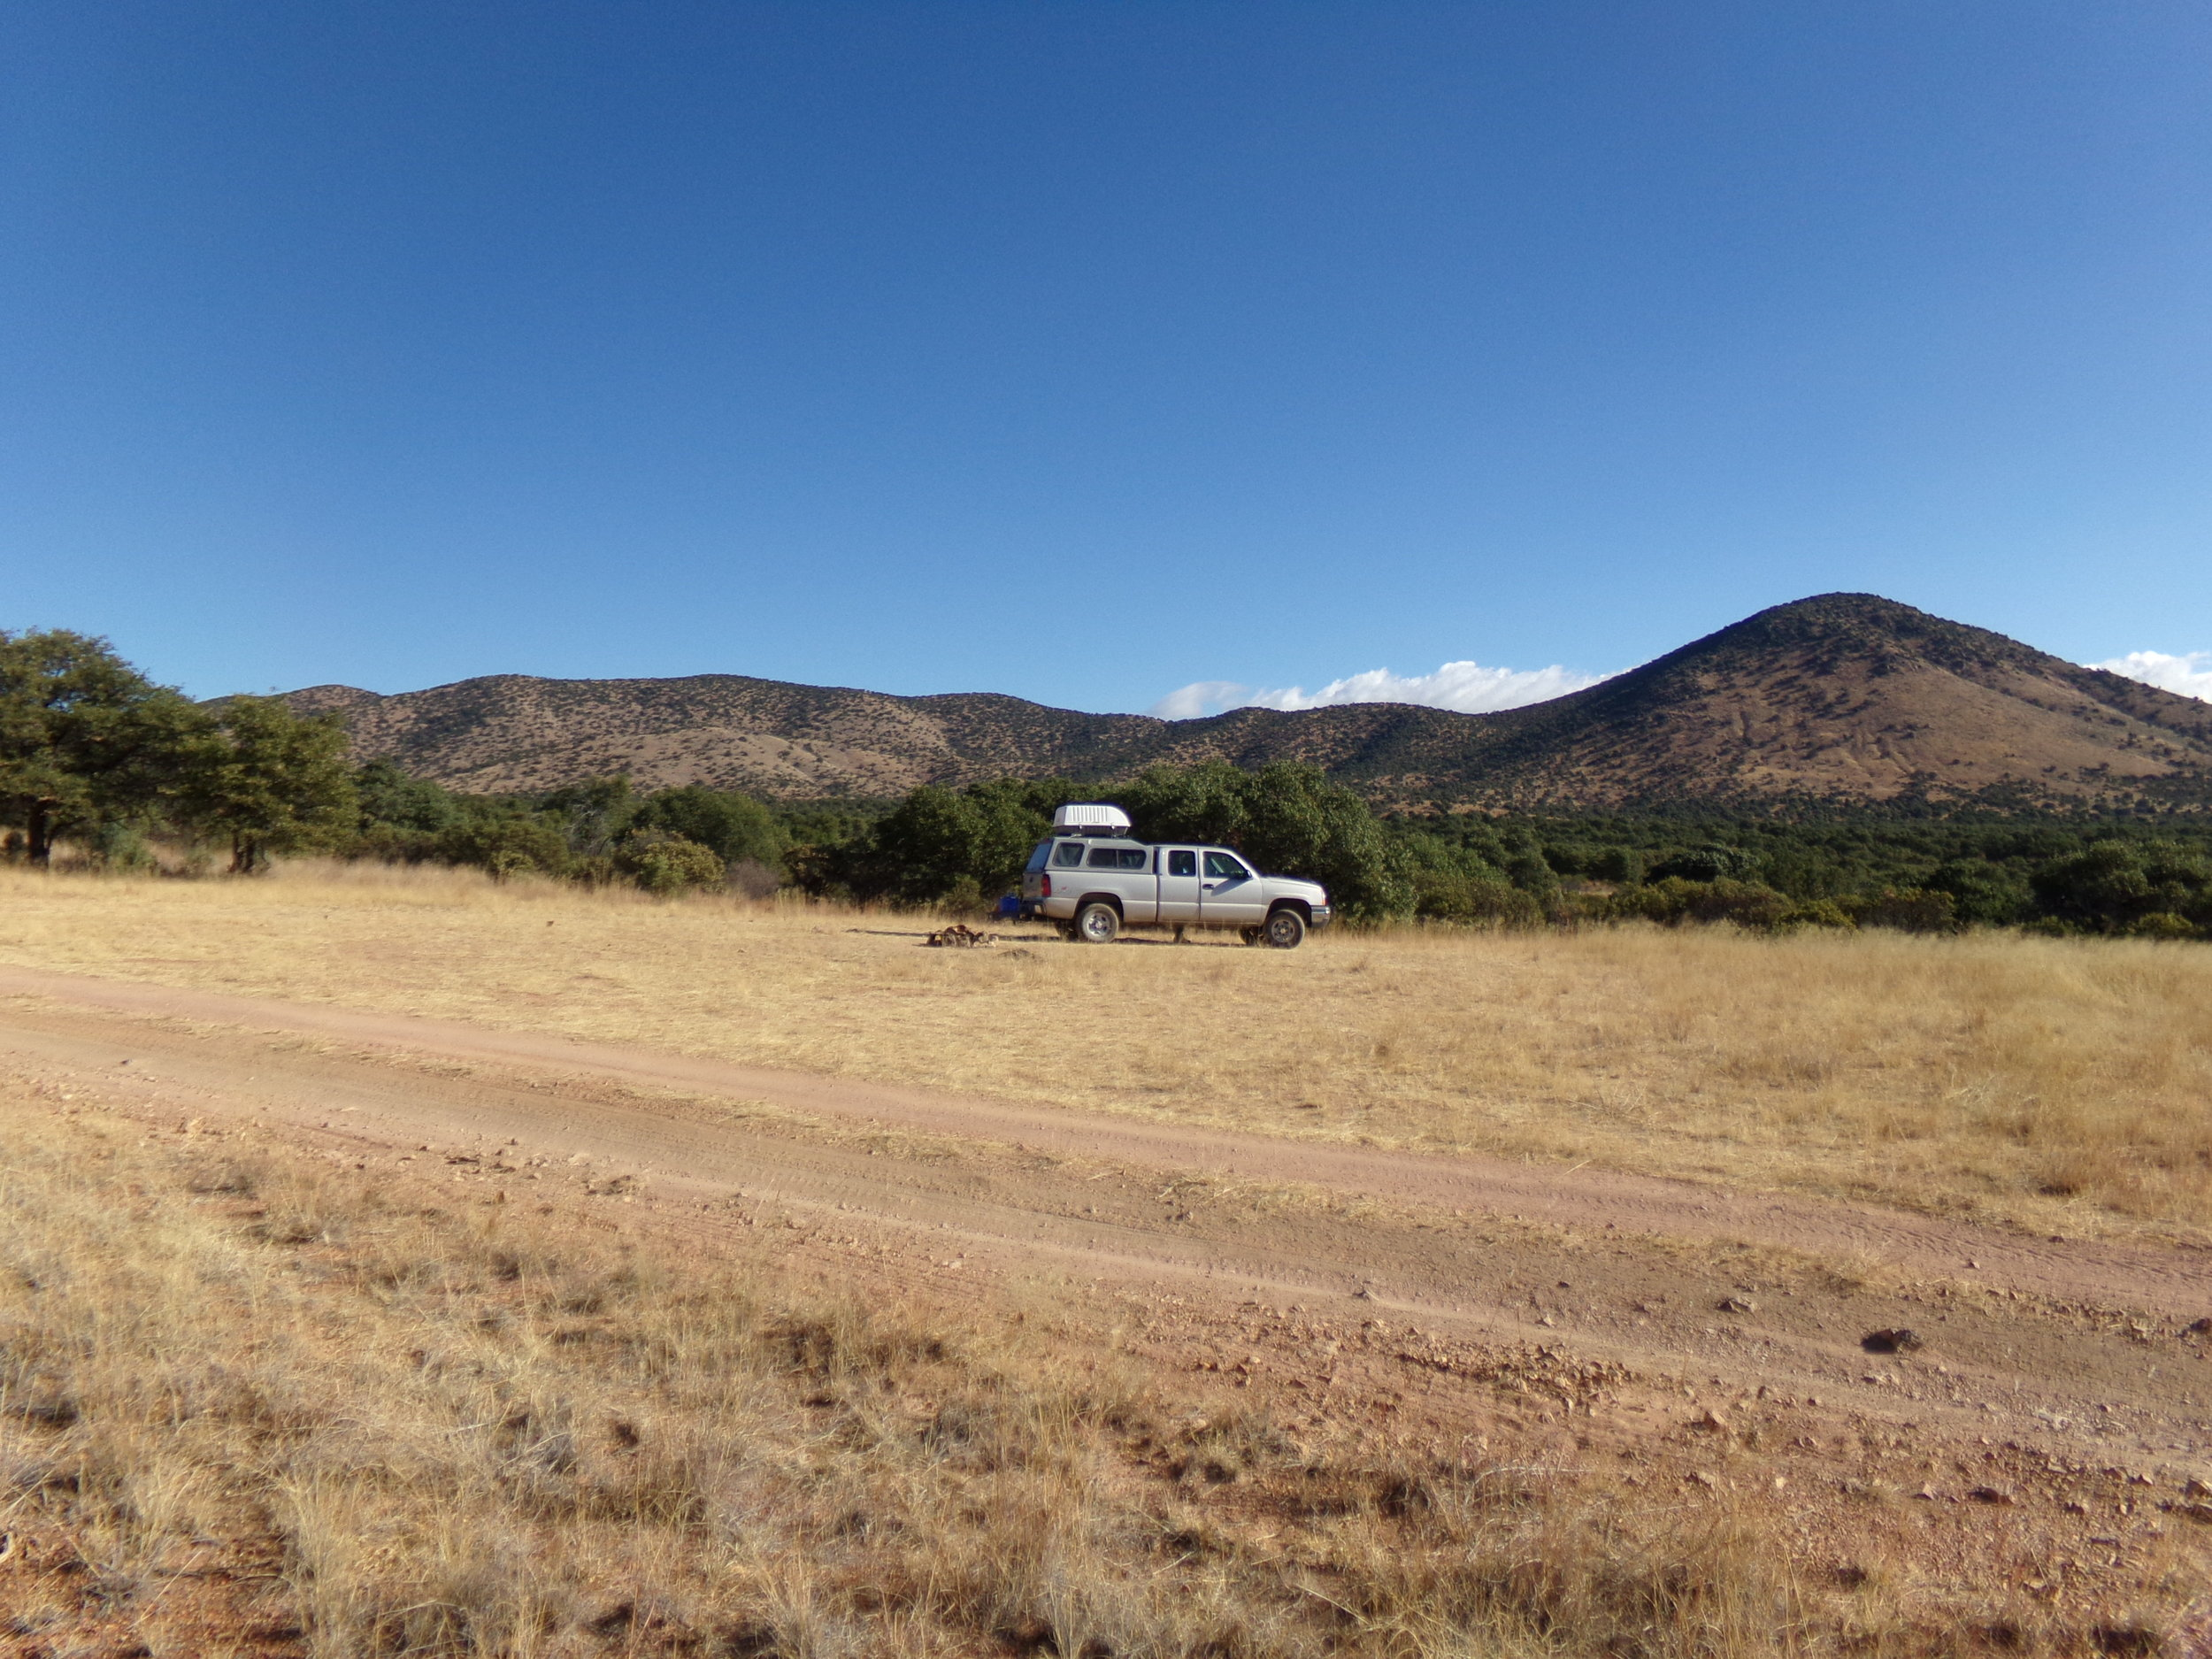 Camping in the Canelo Hills